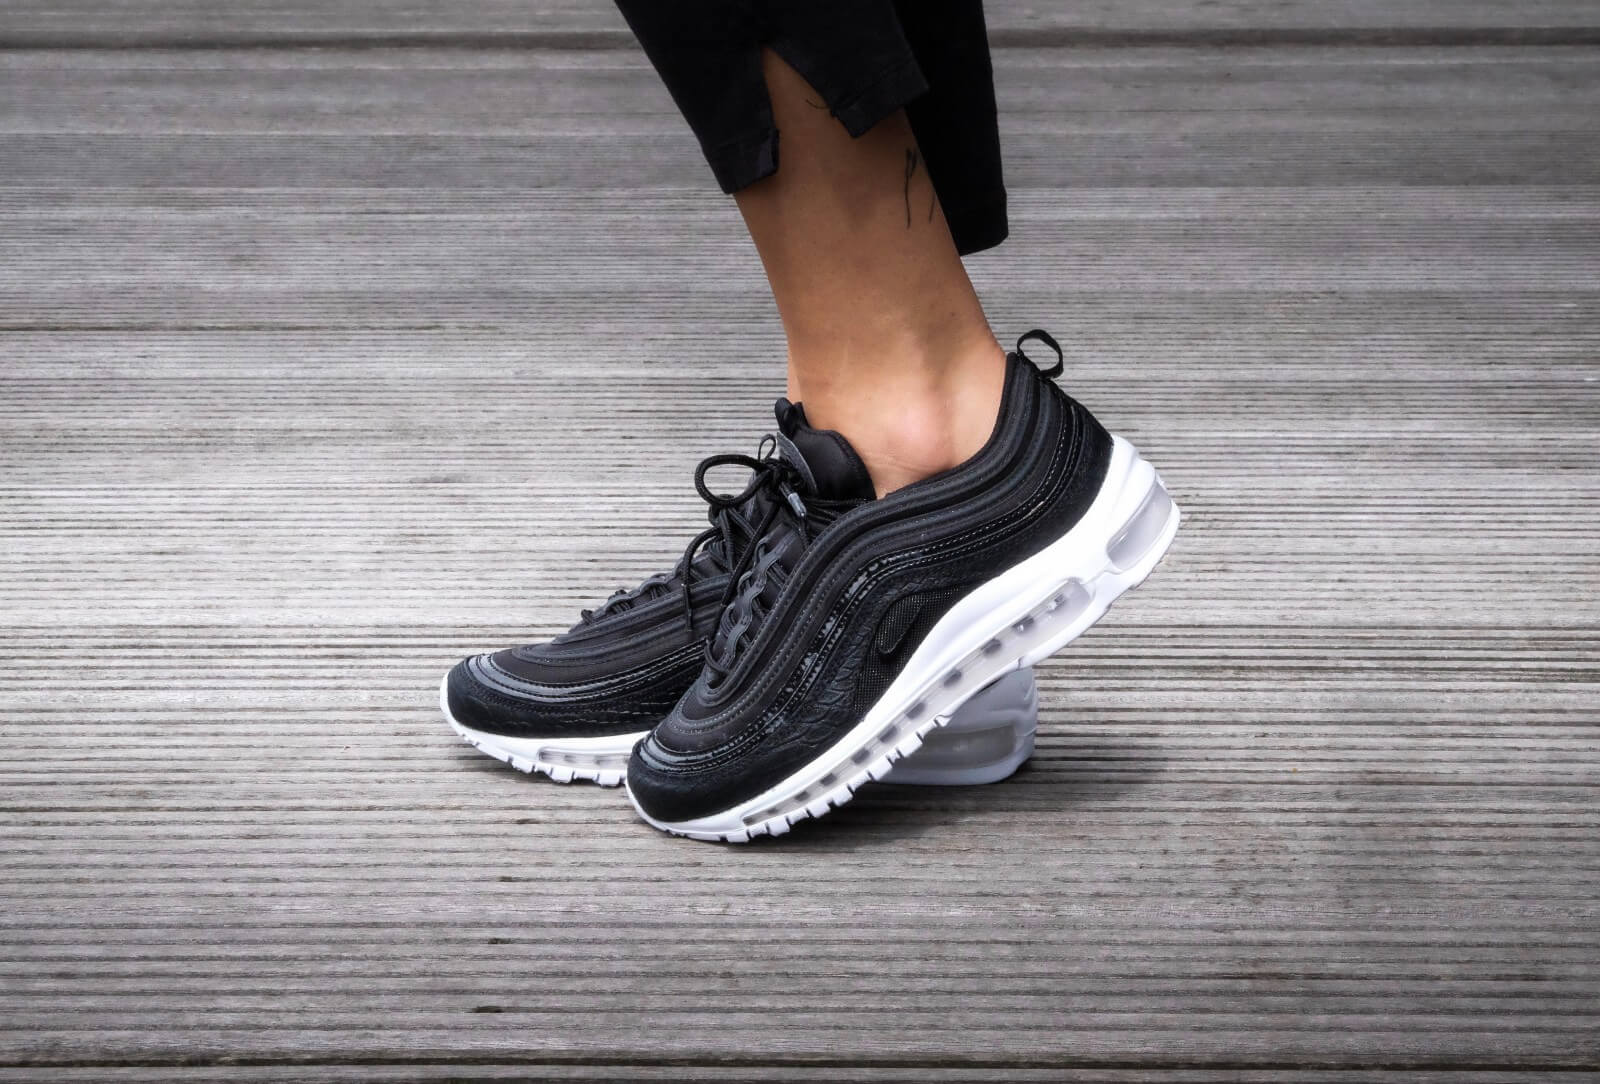 Nike W Air Max 97 Prm Black White 917646 001